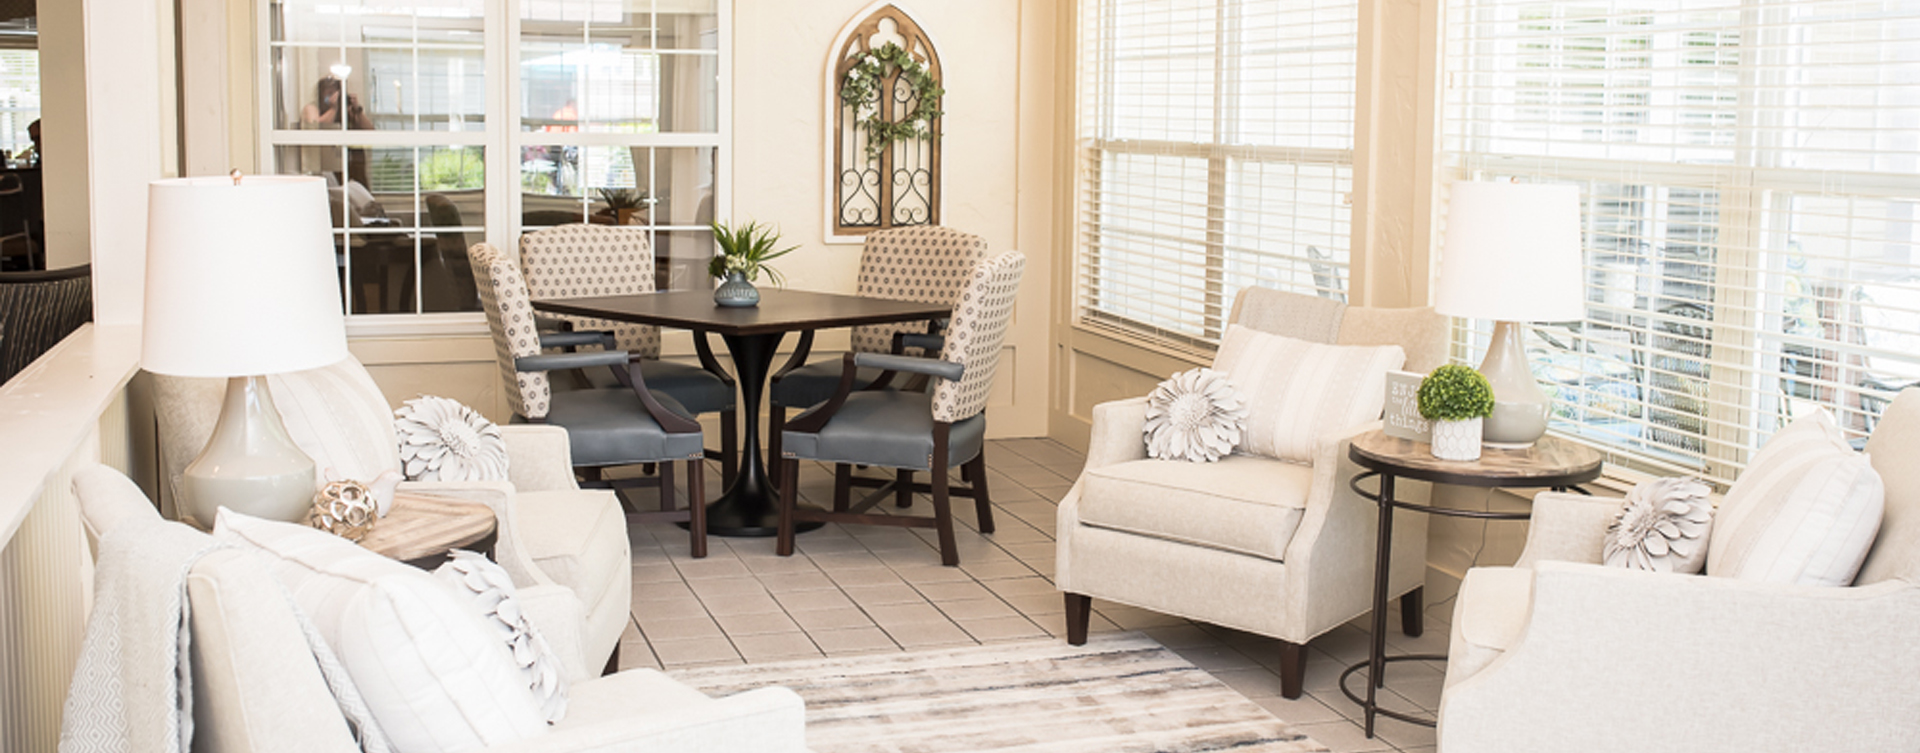 Enjoy the view of the outdoors from the sunroom at Bickford of Sioux City